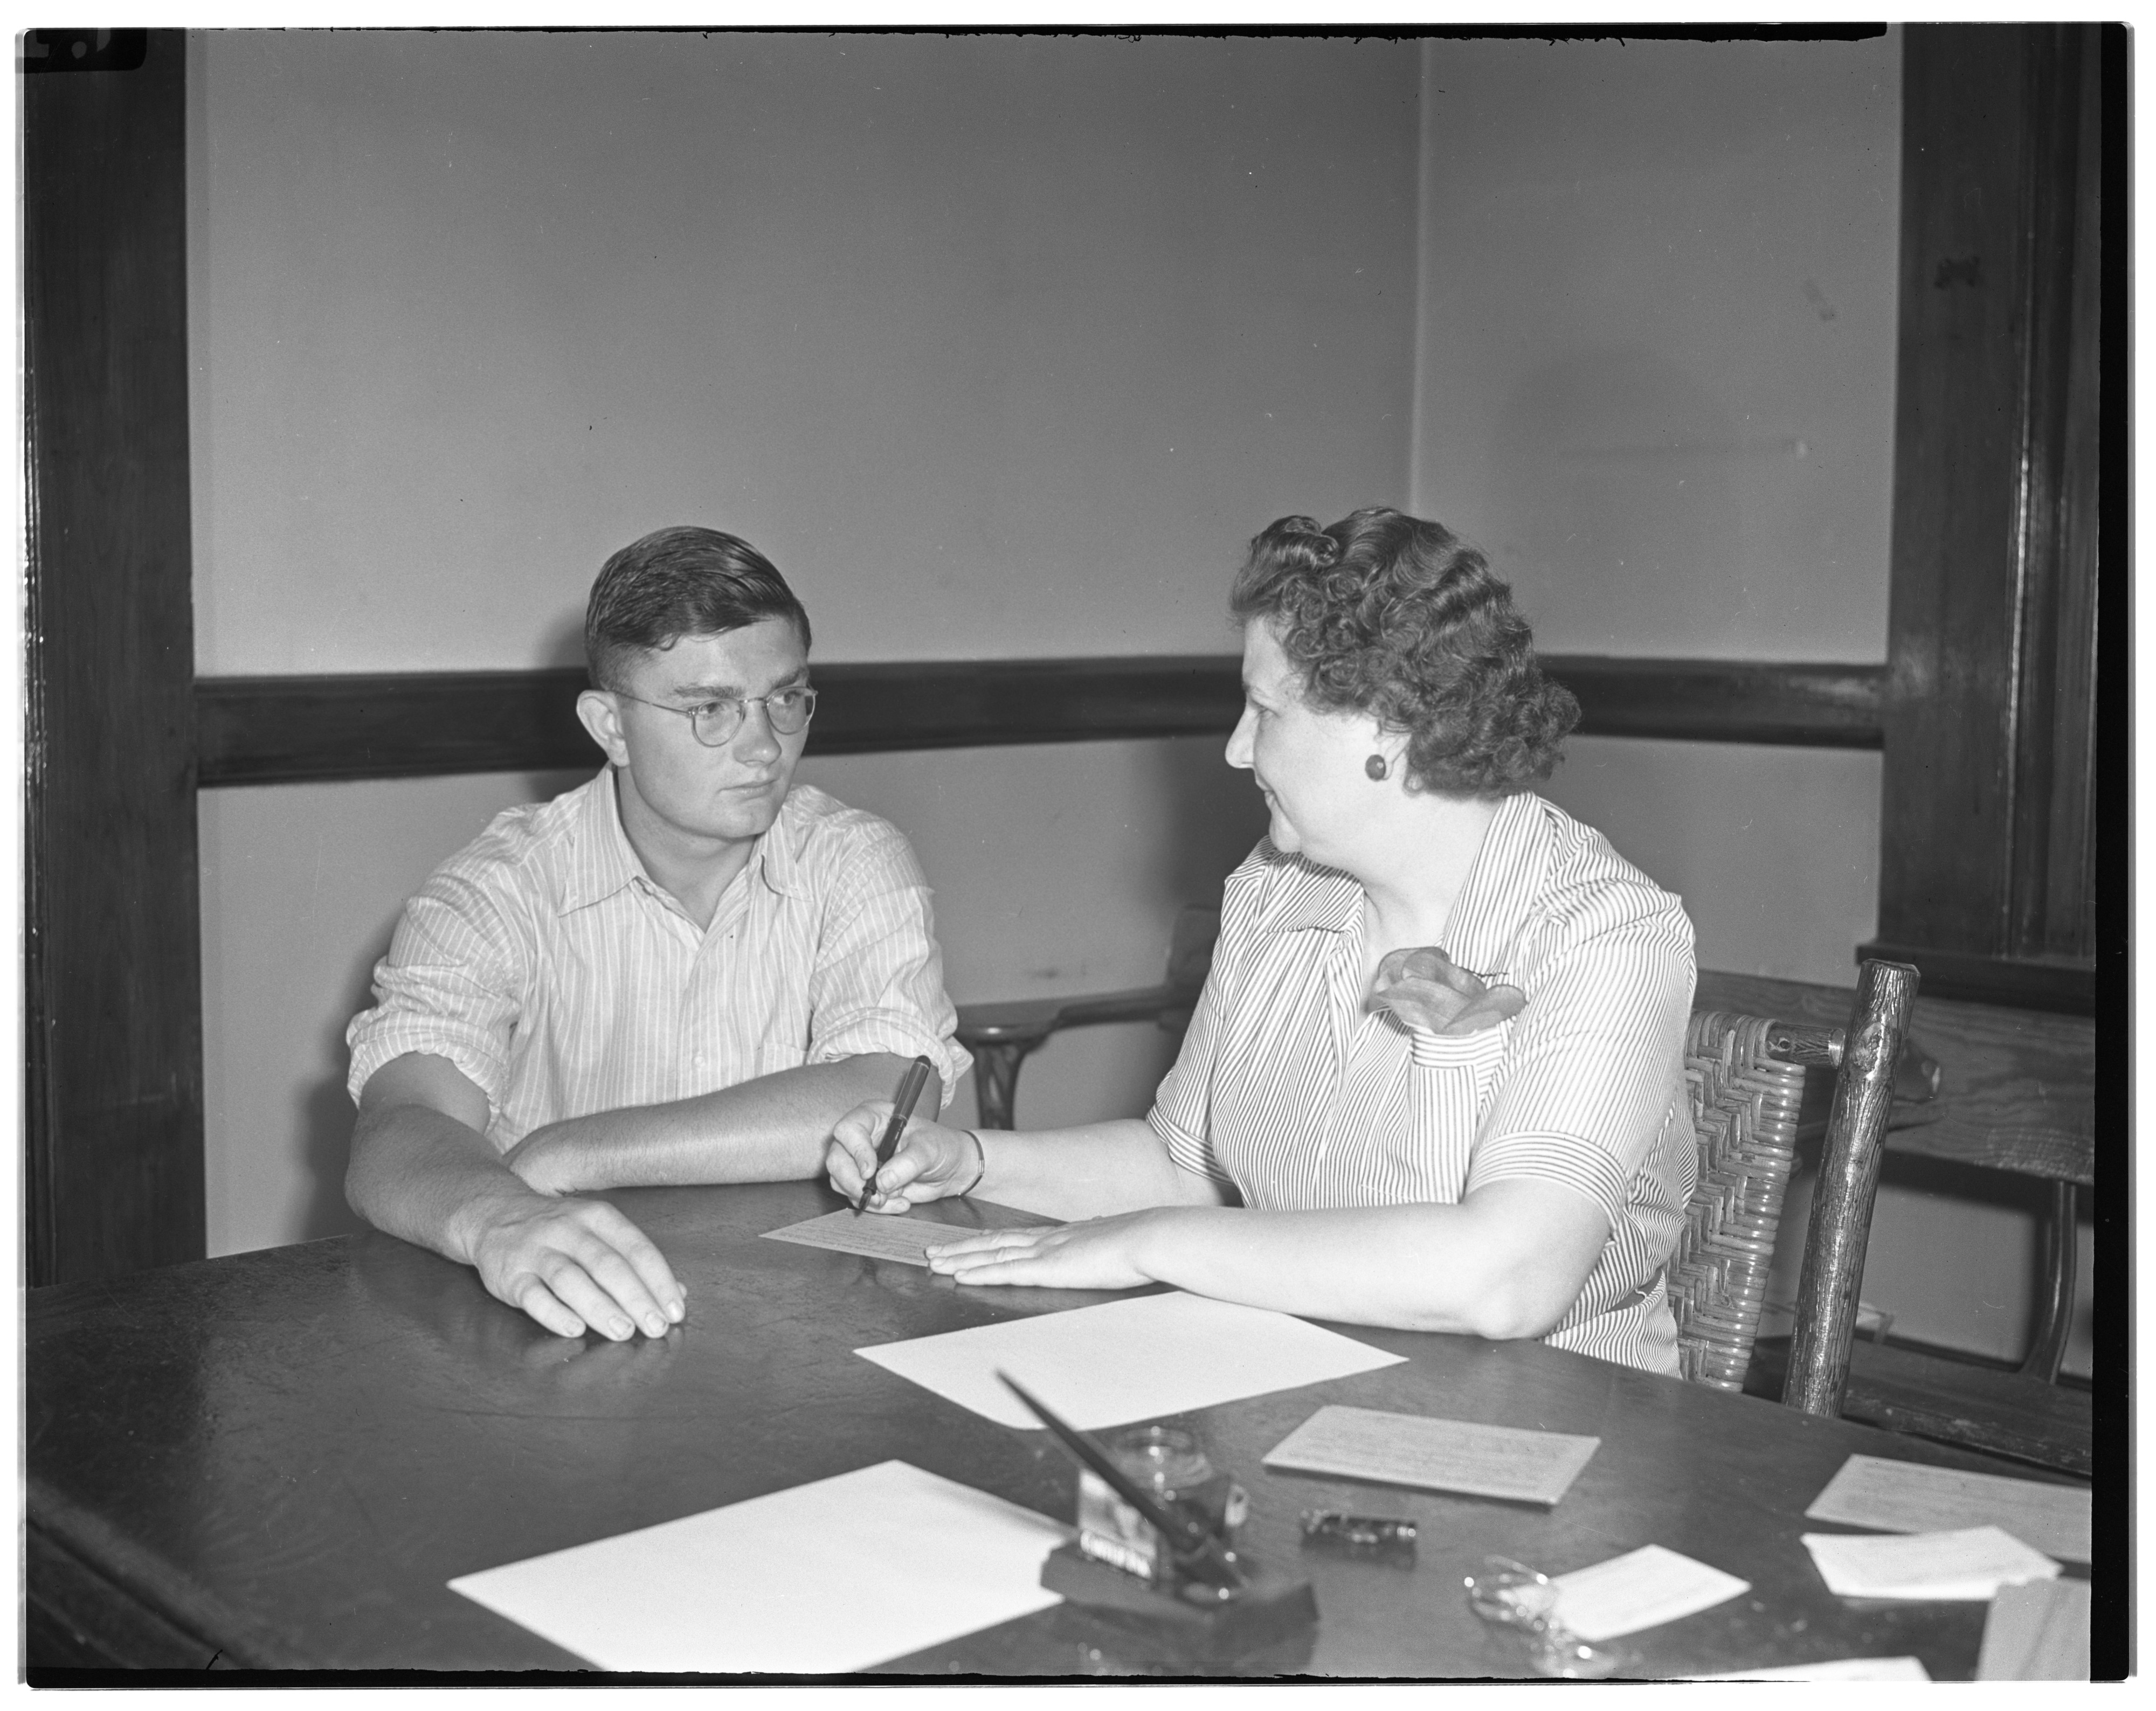 Gertrude Nickels registers her son, Robert, for selective service, June 1942 image